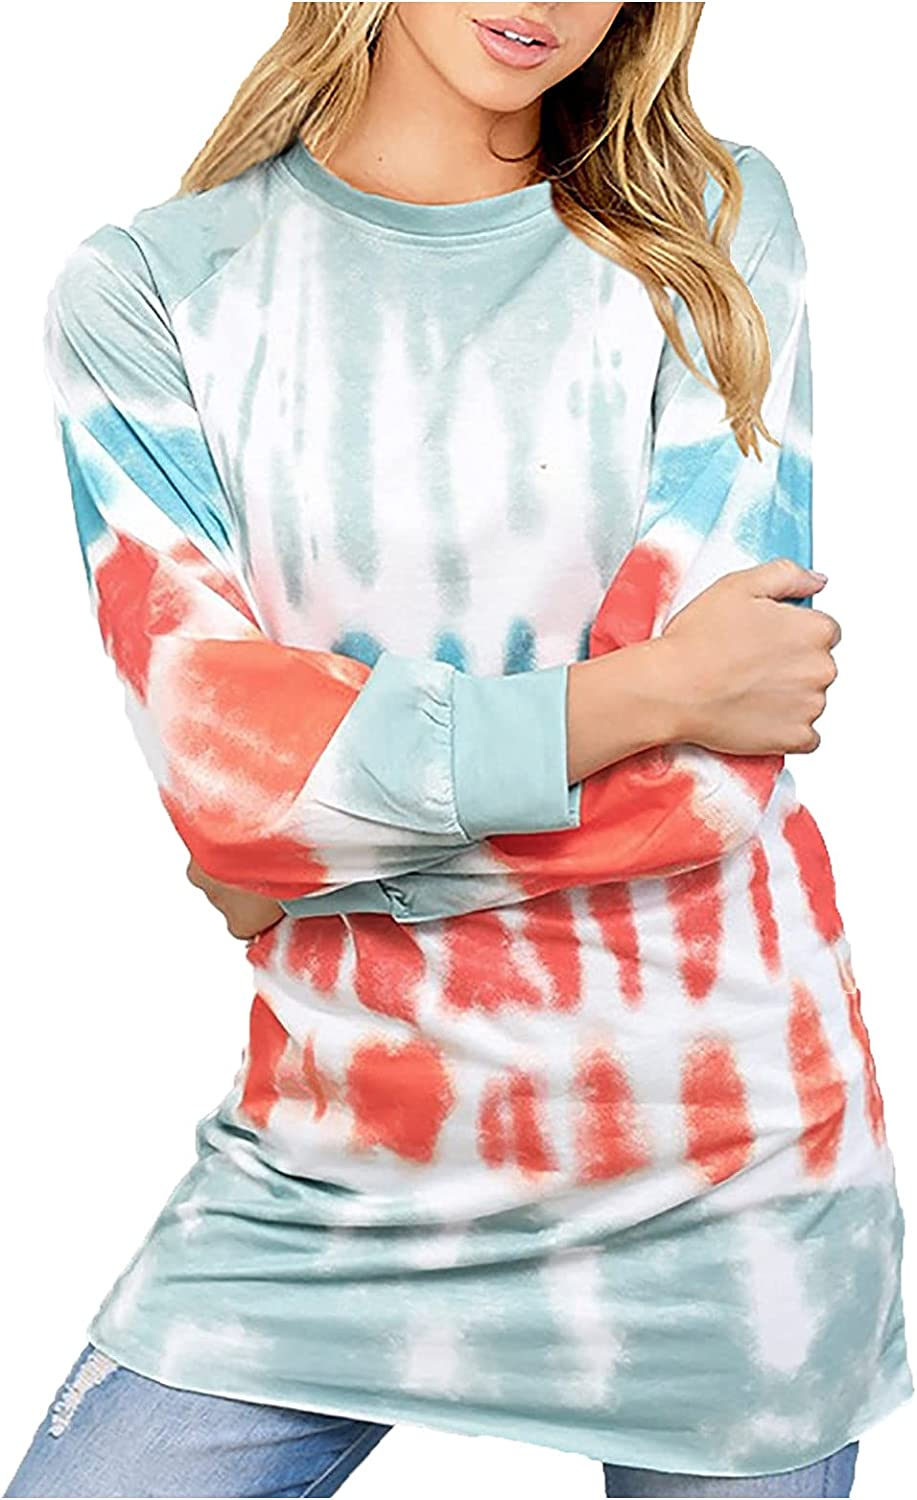 Autumn Pullover Tops for Women's Long Sleeve Crewneck Stripe Tie Dyed Print Shirts Fashionable Long Sweatshirt